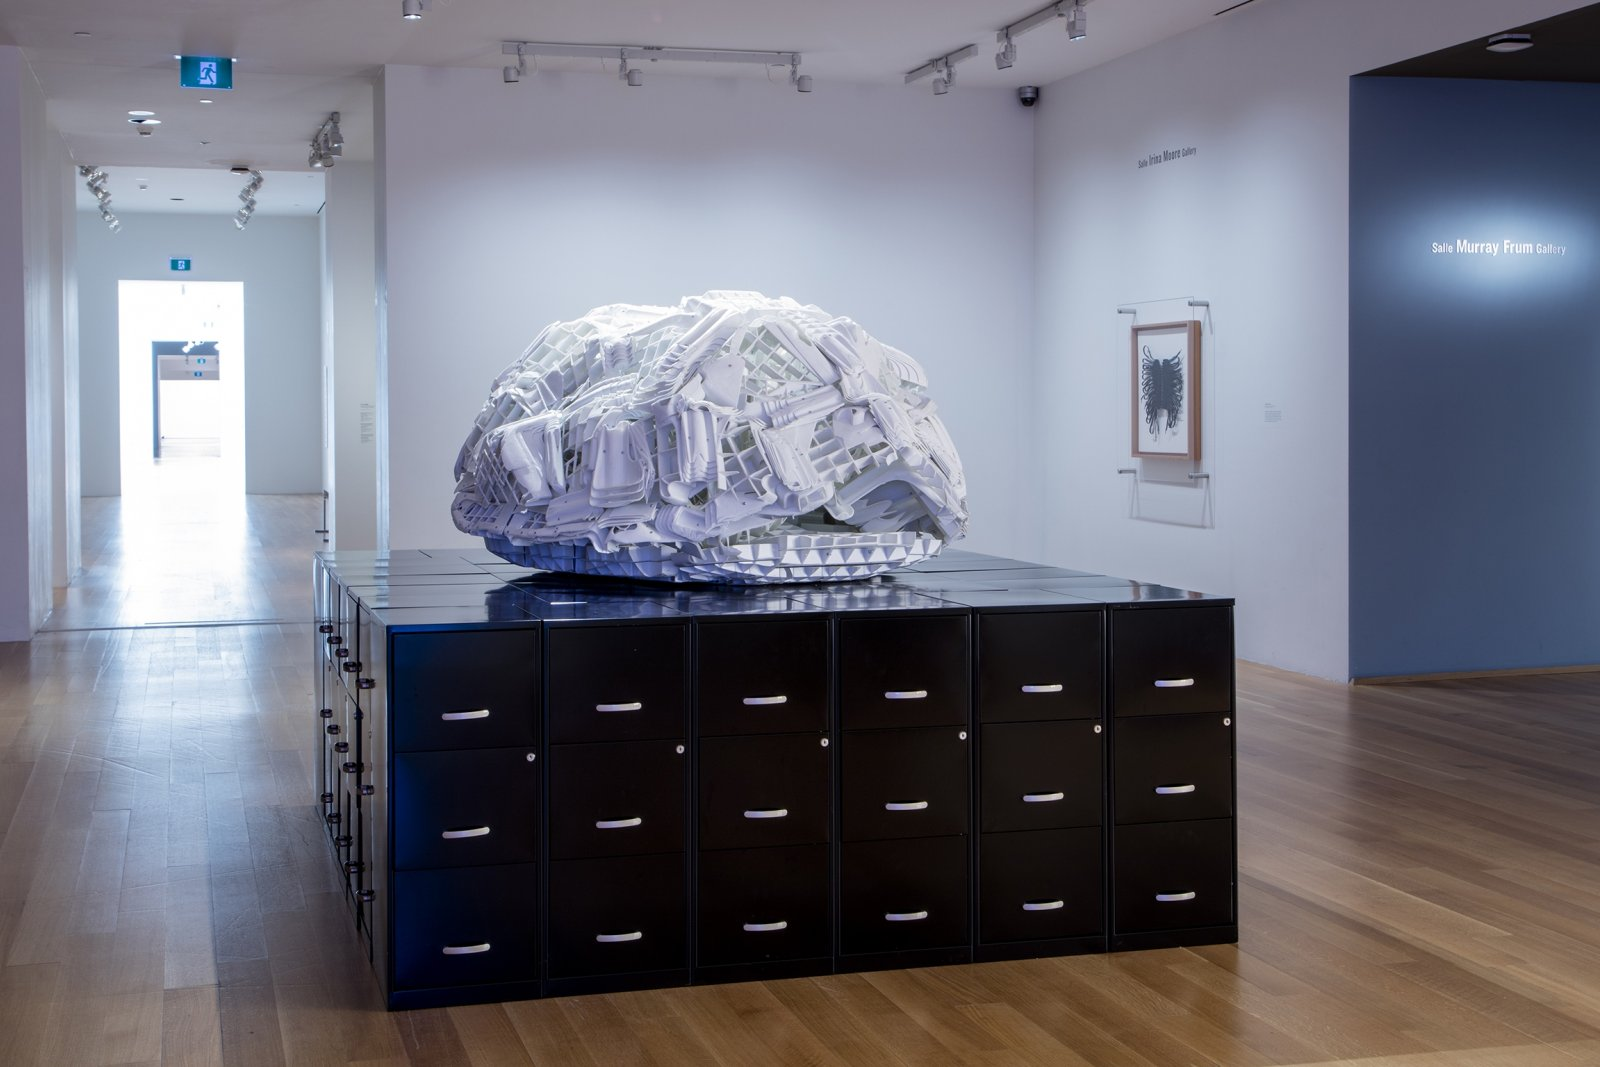 Brian Jungen, Tombstone, 2019, rubbermaid step stools, filing cabinets, 69 x 107 x 86 in. (174 x 272 x 217 cm). Installation view, Friendship Centre, Art Gallery of Ontario, Toronto, Canada, 2019